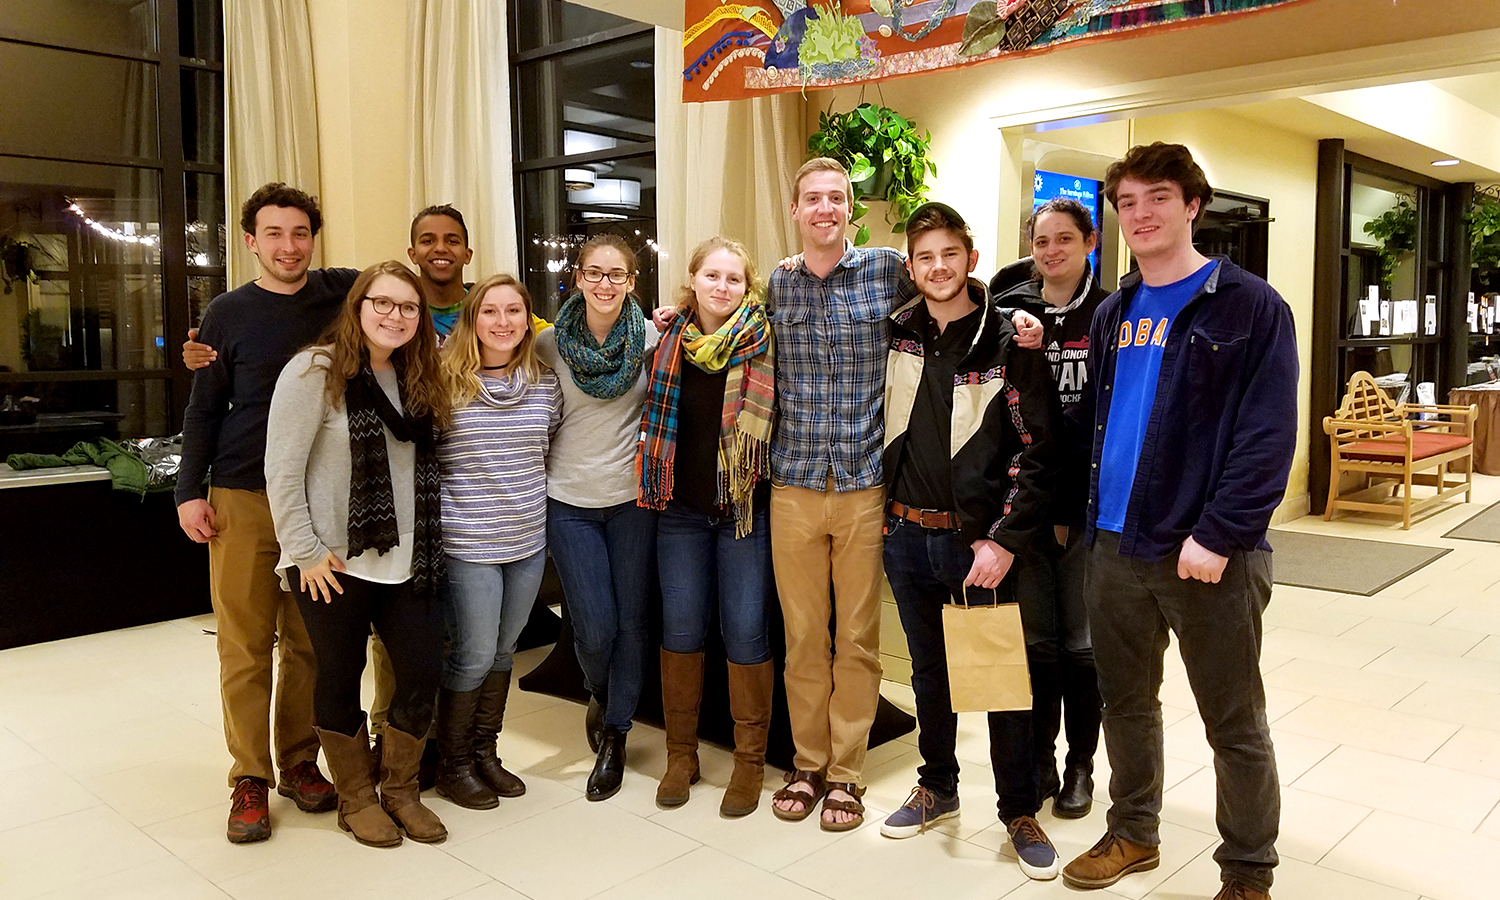 Students in the Sustainable Living and Learning Community (SLLC) Program with Assistant Professor of Environmental Studies Robin Lewis pose for a group photo at the Northeast Organic Farming Association – New York (NOFA-NY) Conference in Saratoga Springs, N.Y.